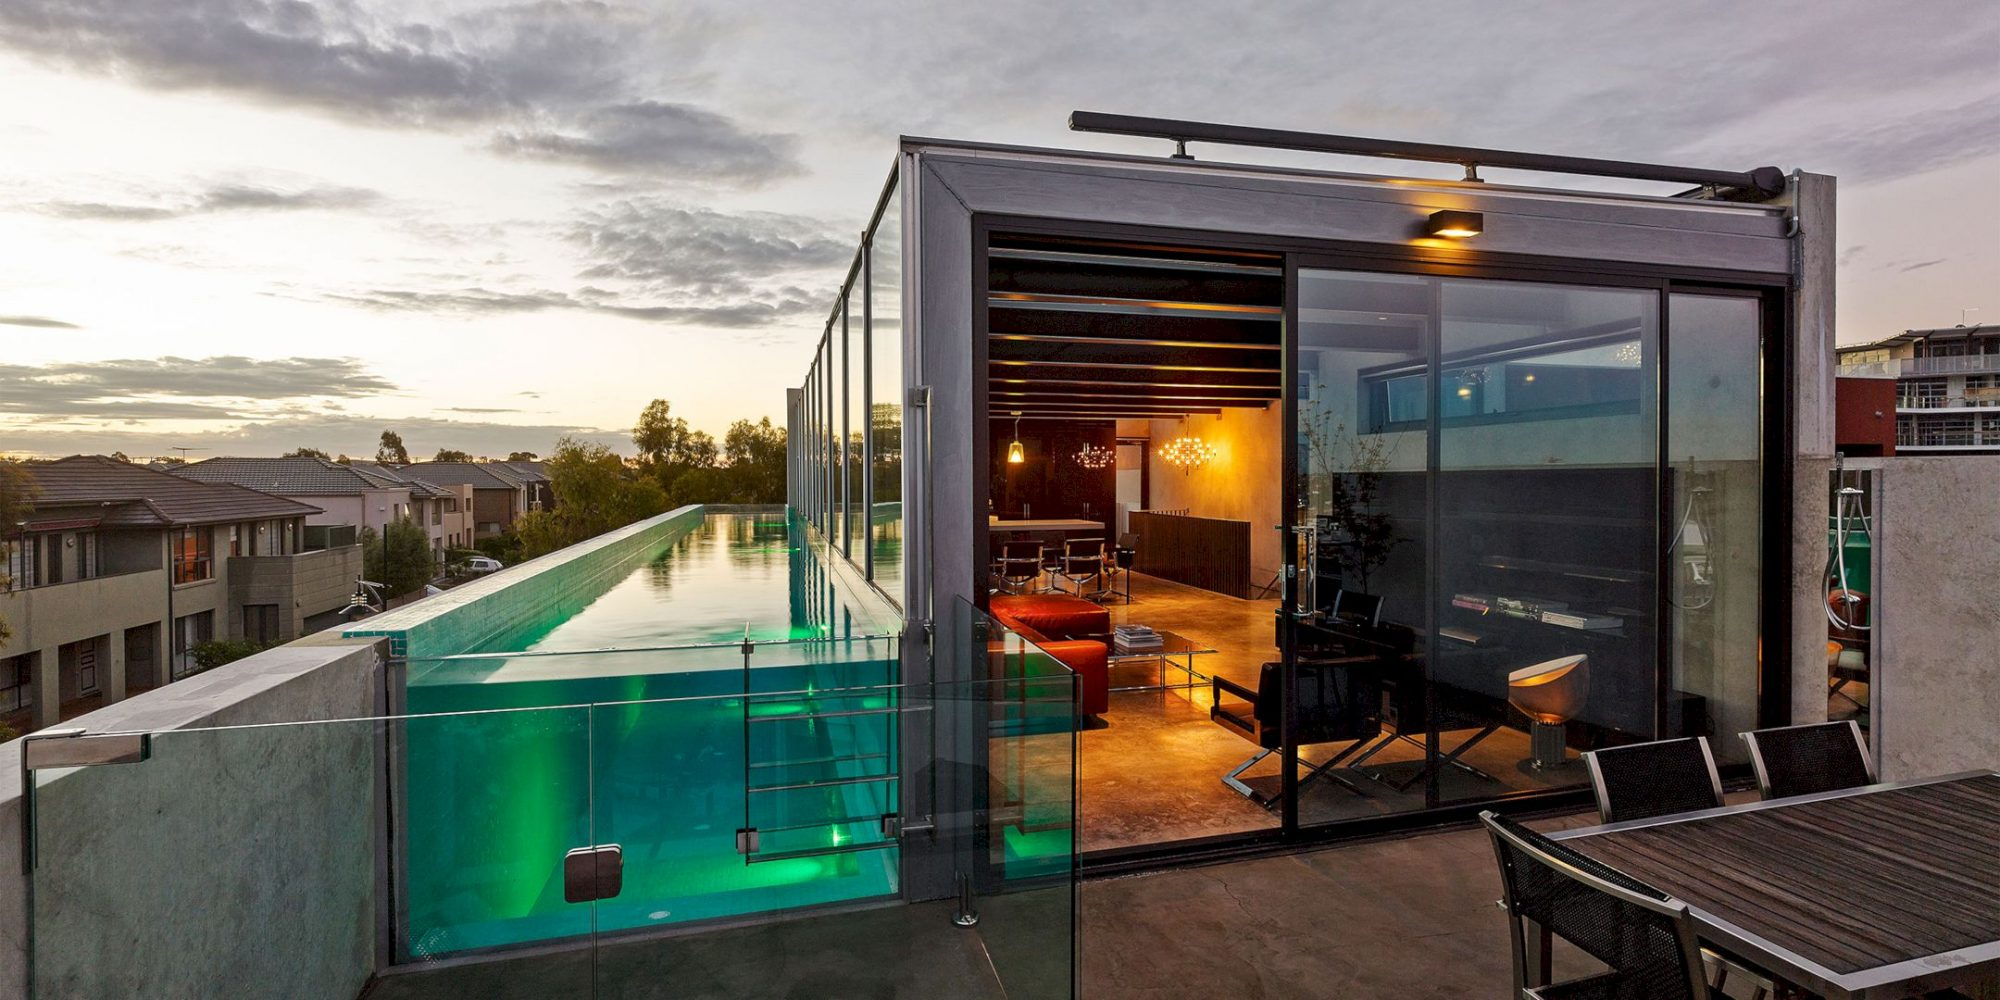 Skyline Project: Contemporary House with Concrete Walls – Futurist ...